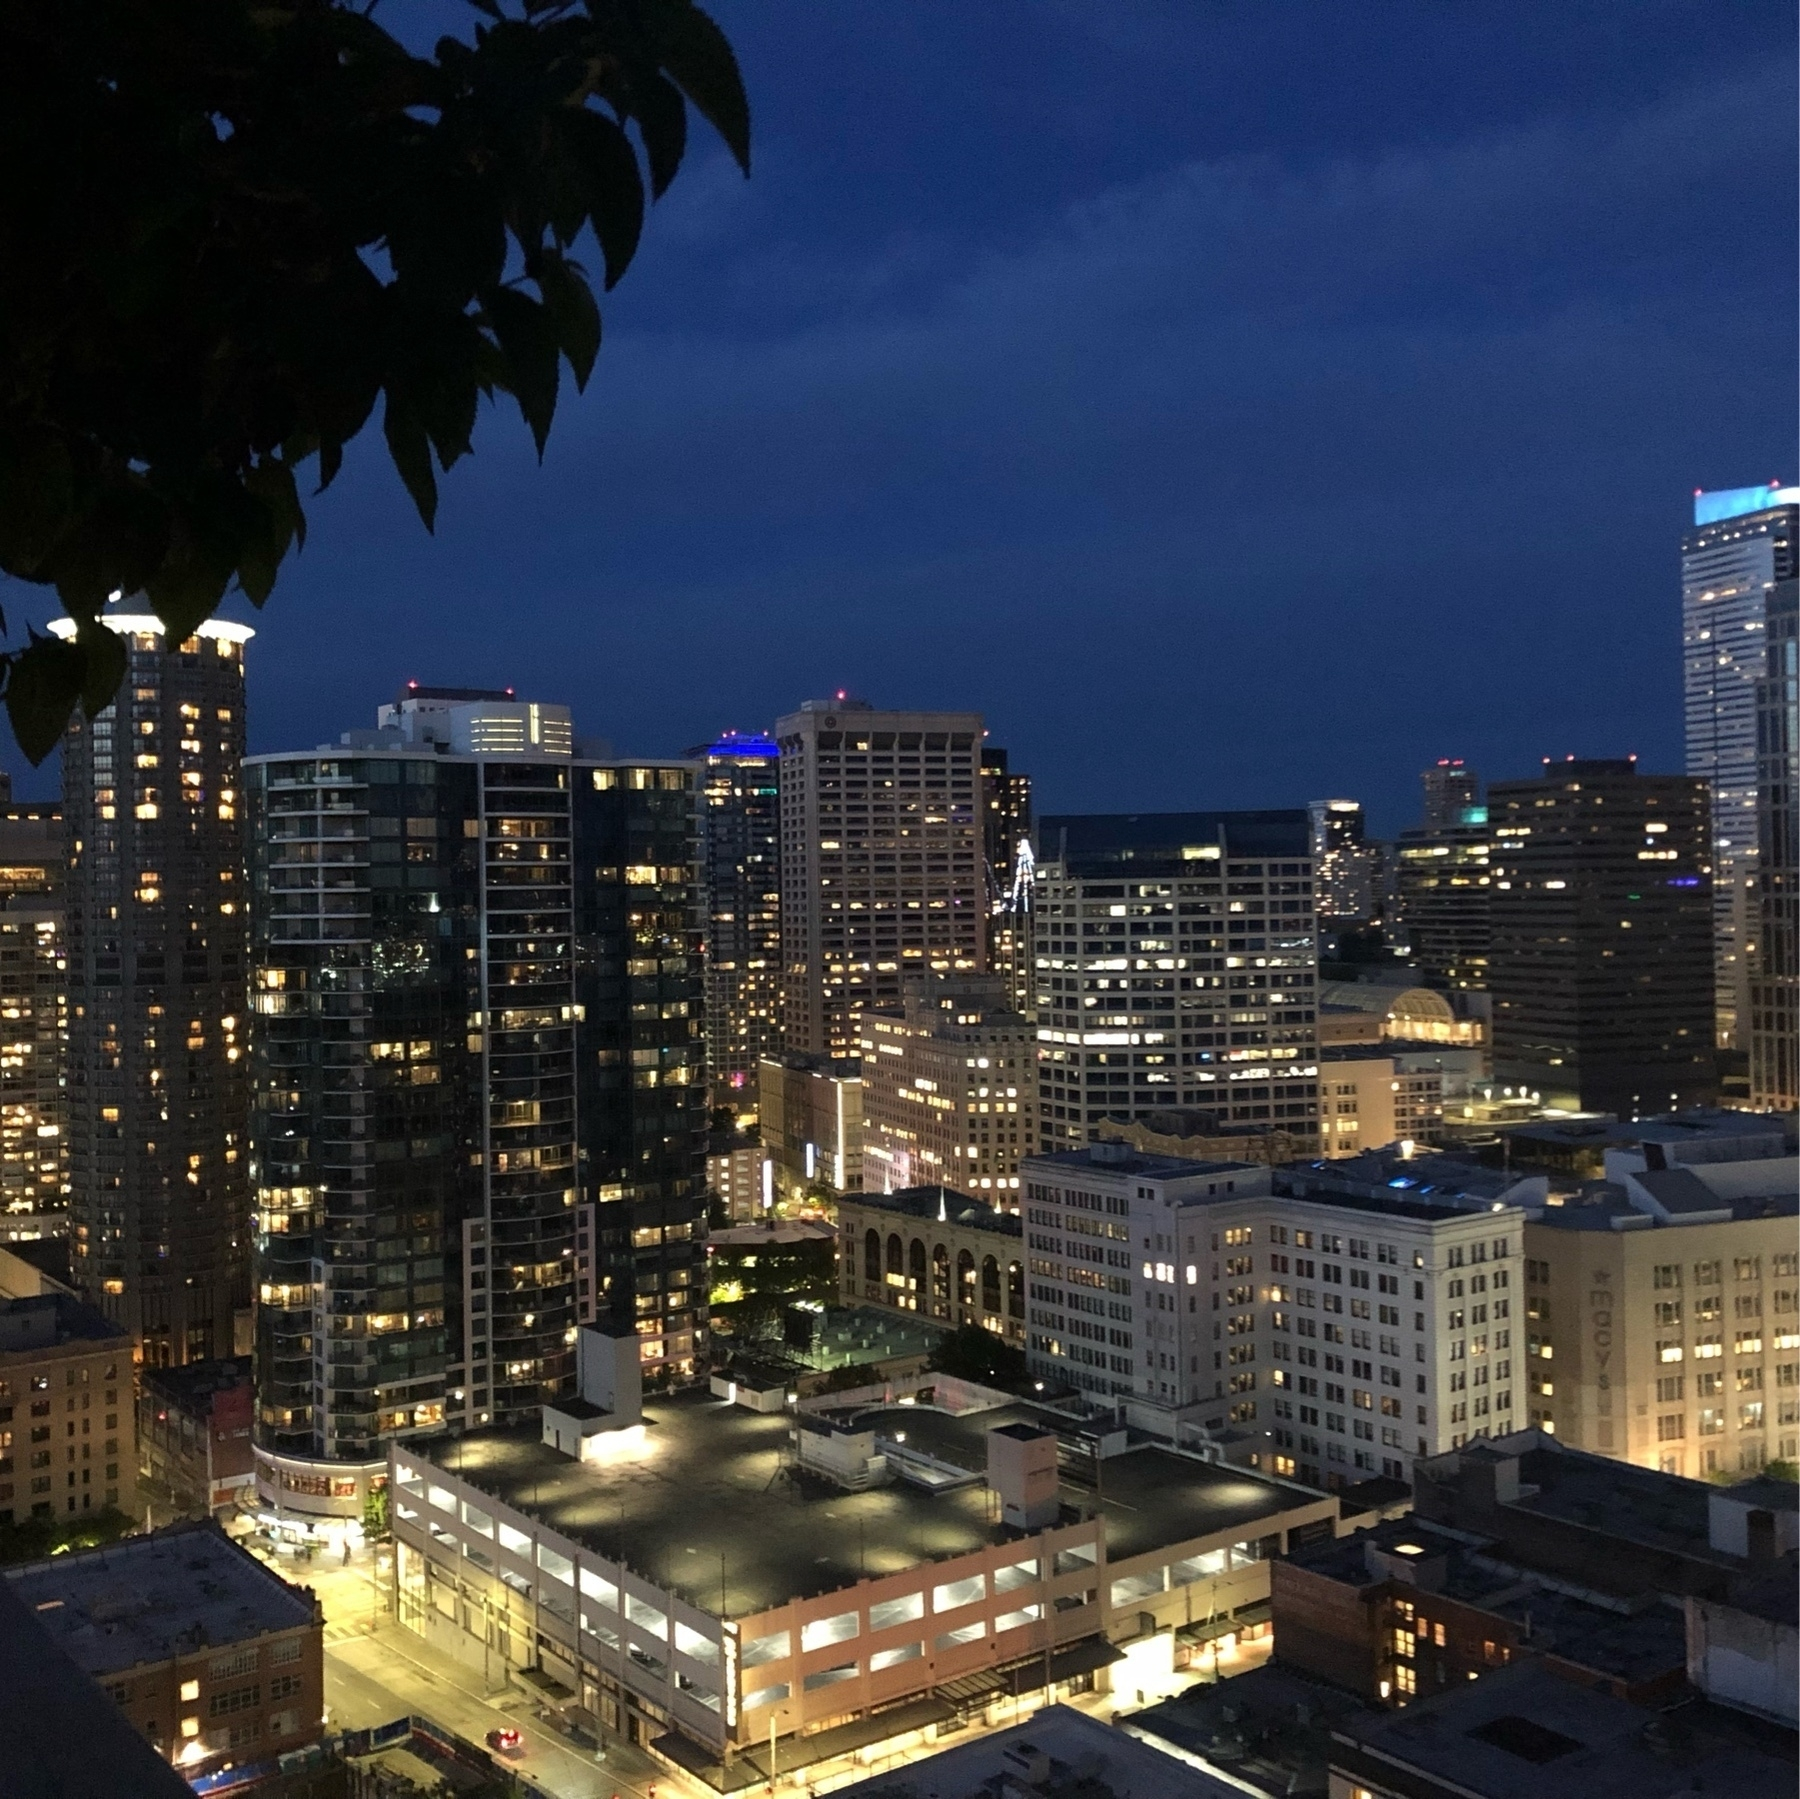 The Seattle Cityscape in Dusky Blue and Gold